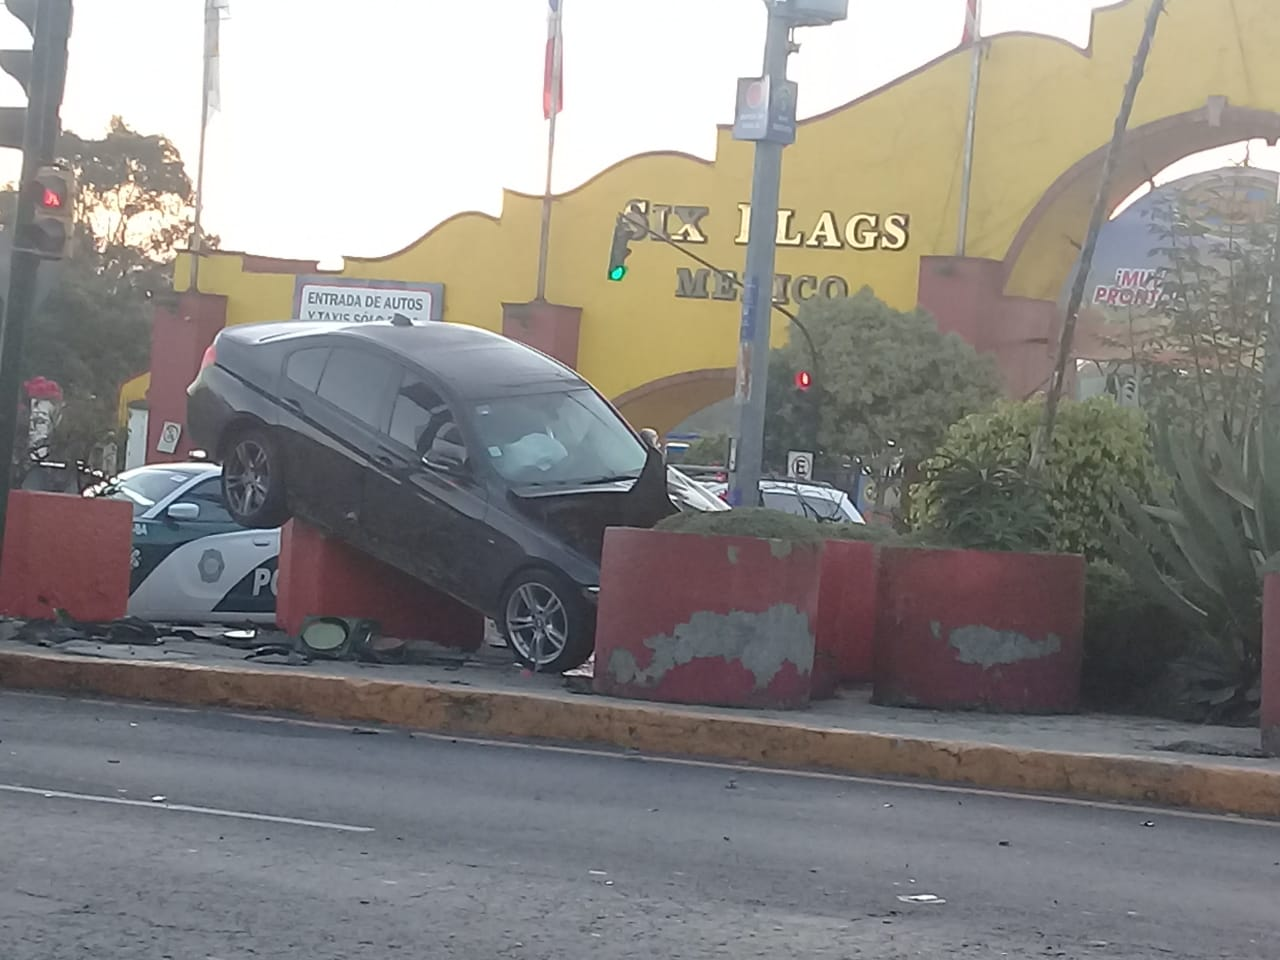 AUTO SE VUELCA Y CHOCA CONTRA MACETAS DE SIX FLAGS